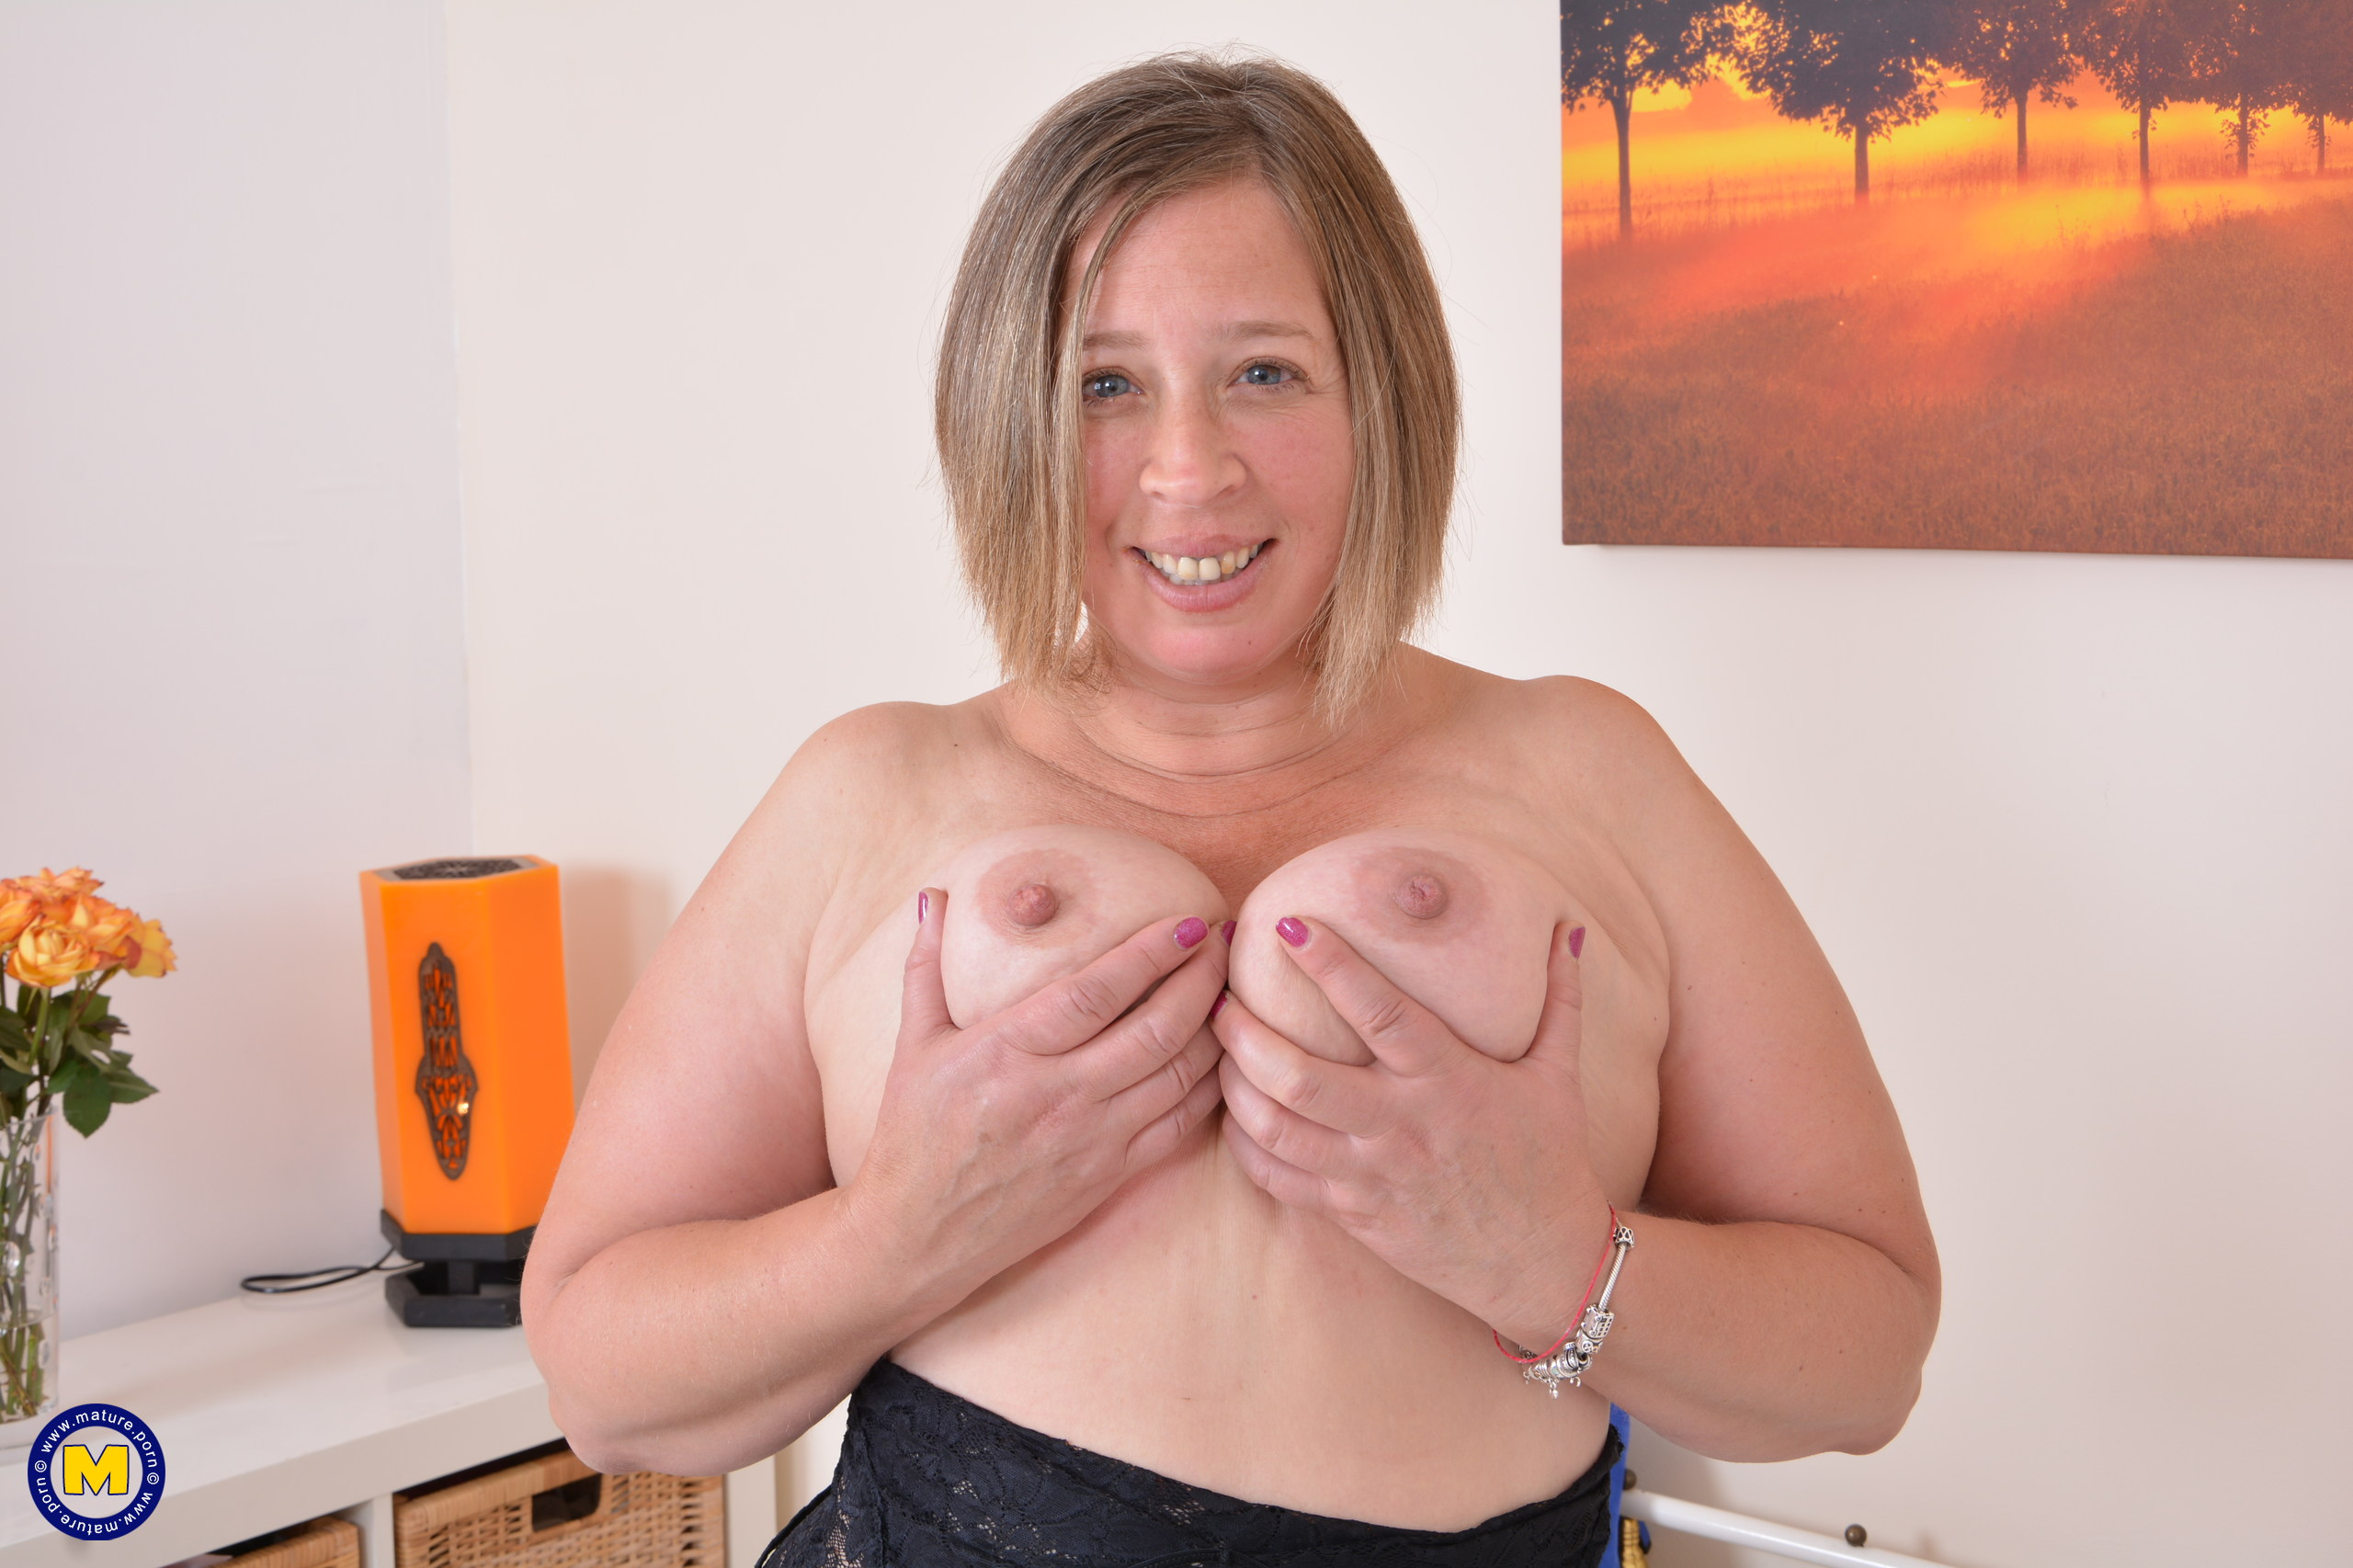 British curvaceous housewife toying with herself